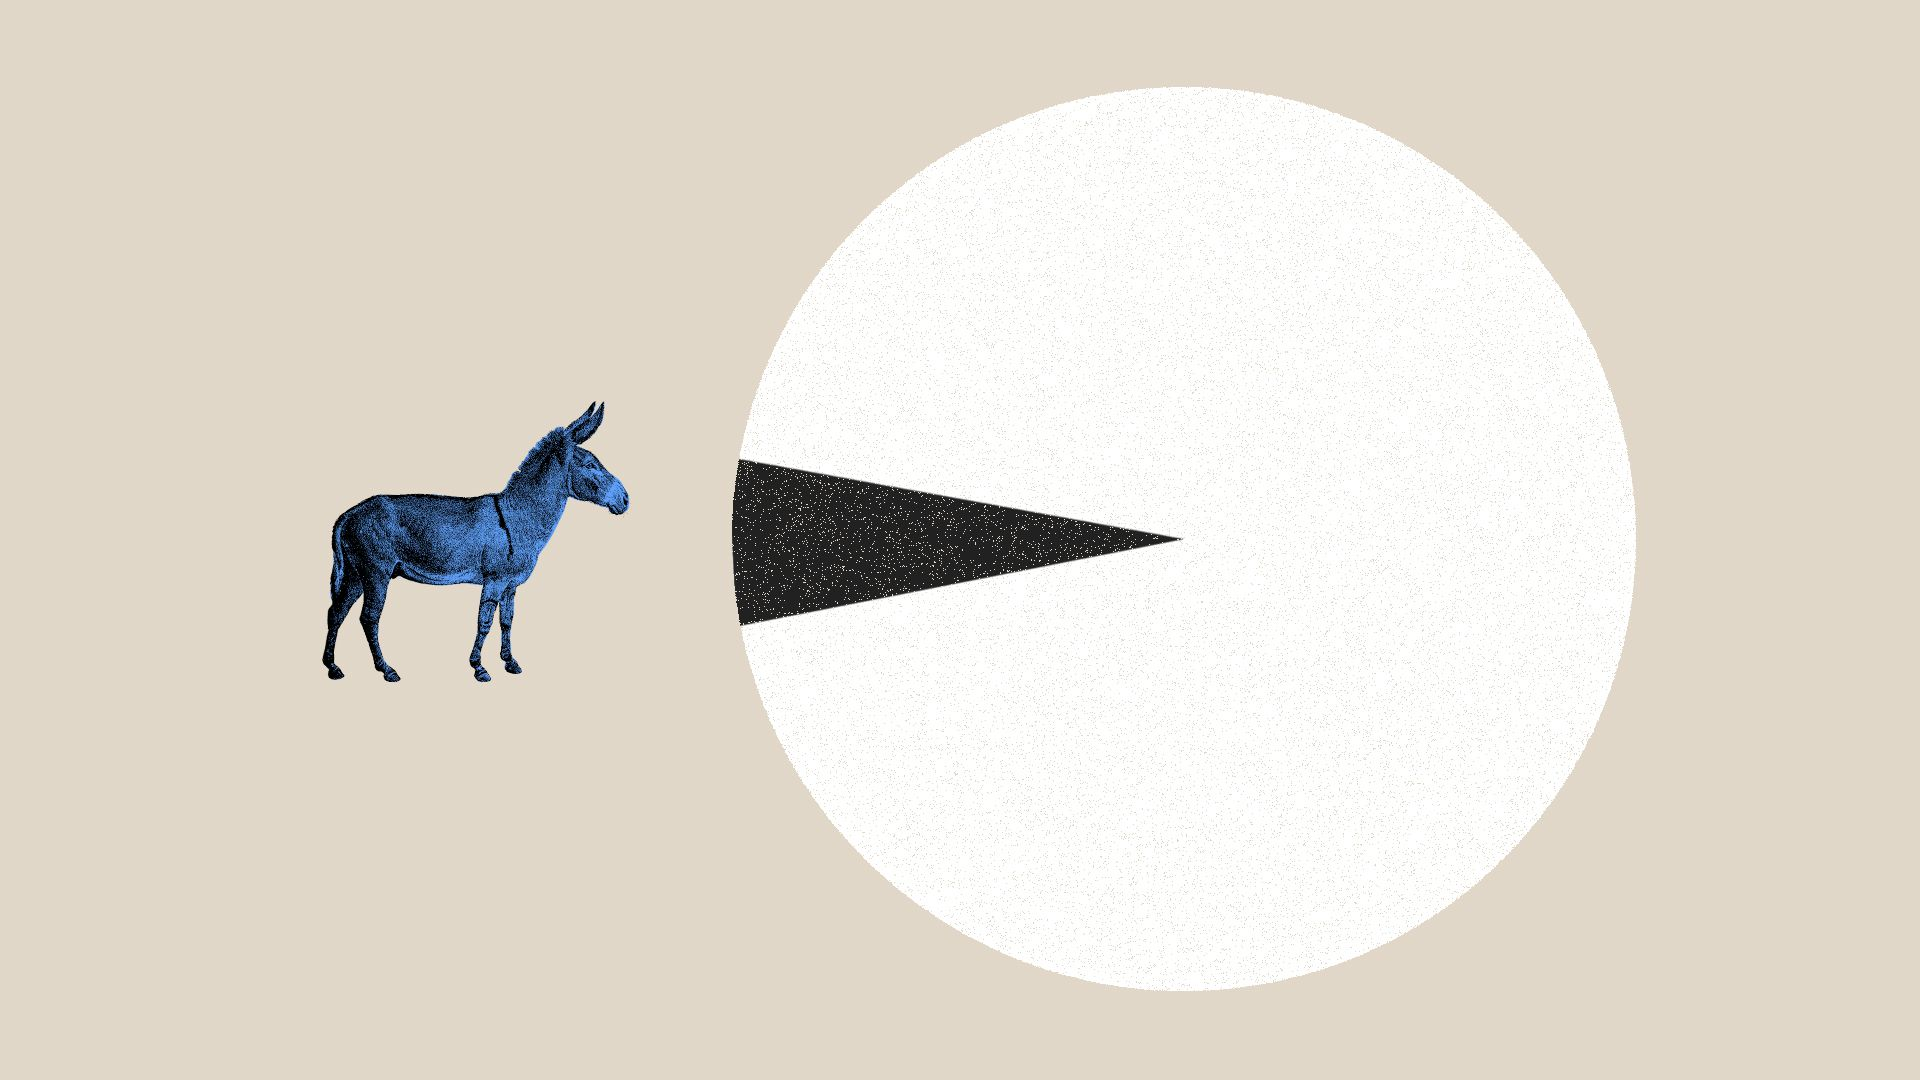 Illustration of donkey facing  large pie chart